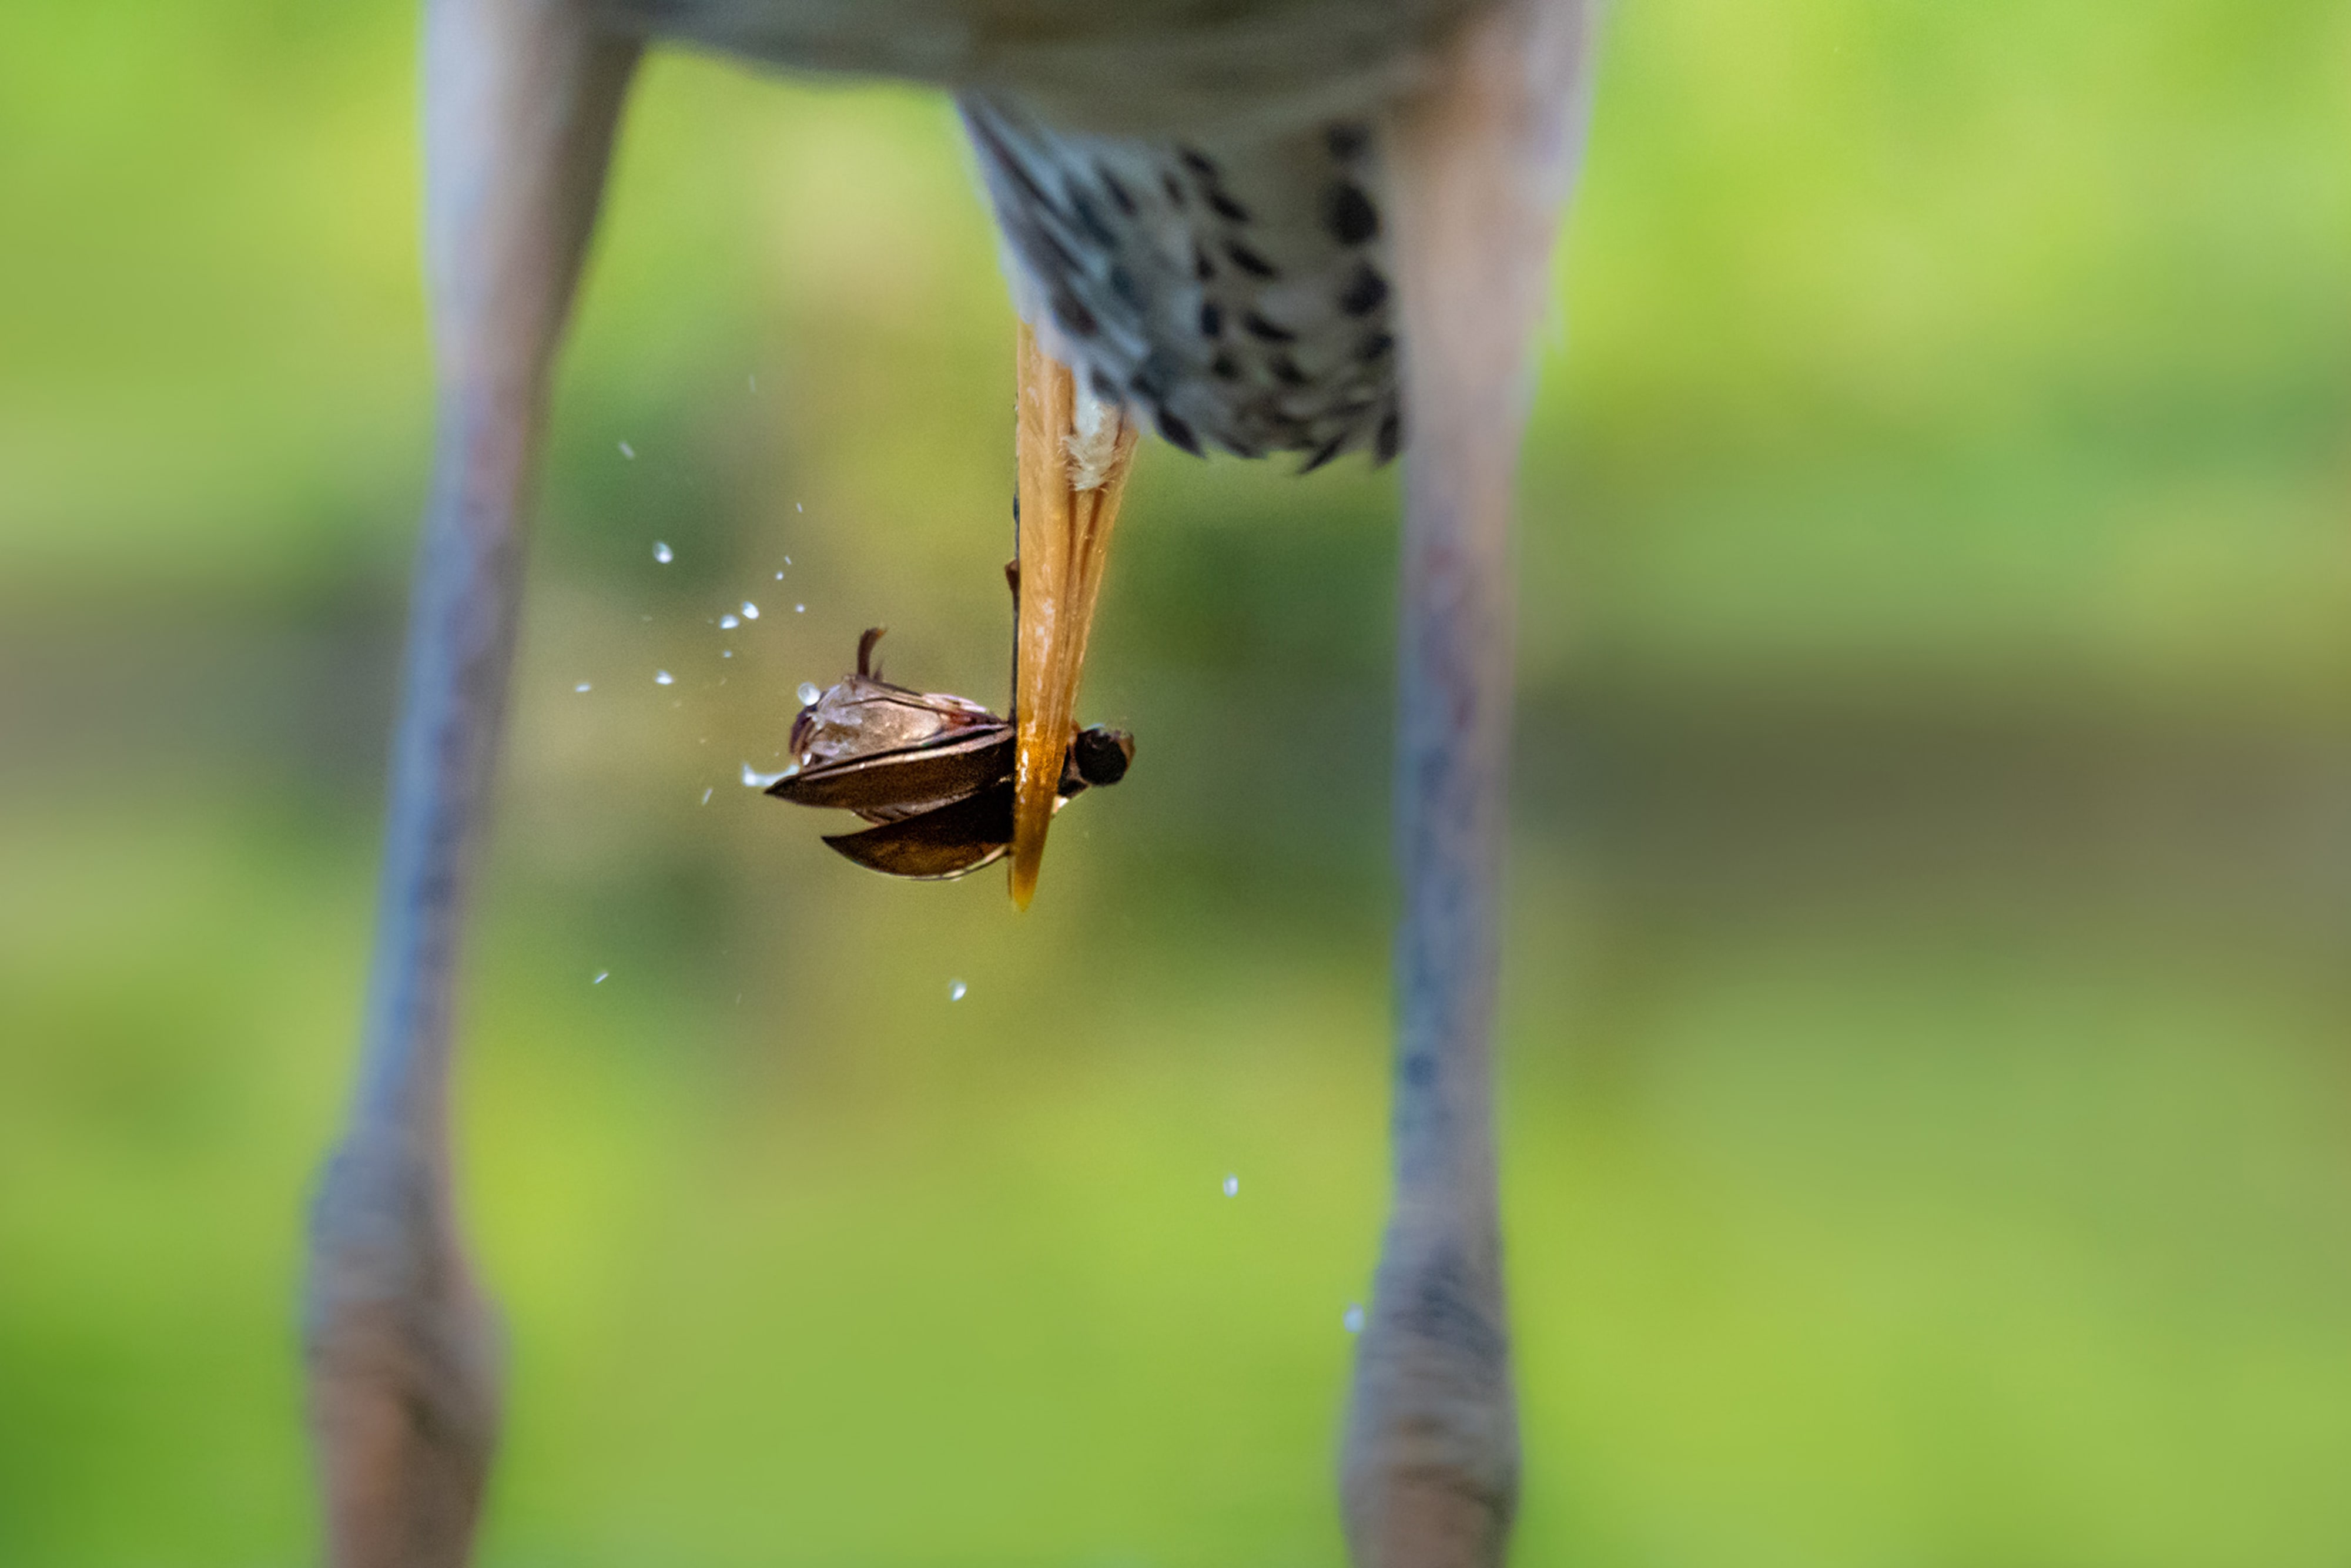 petar-sabol-sony-rx10IV-close-up-of-insect-being-held-in-birds-beak